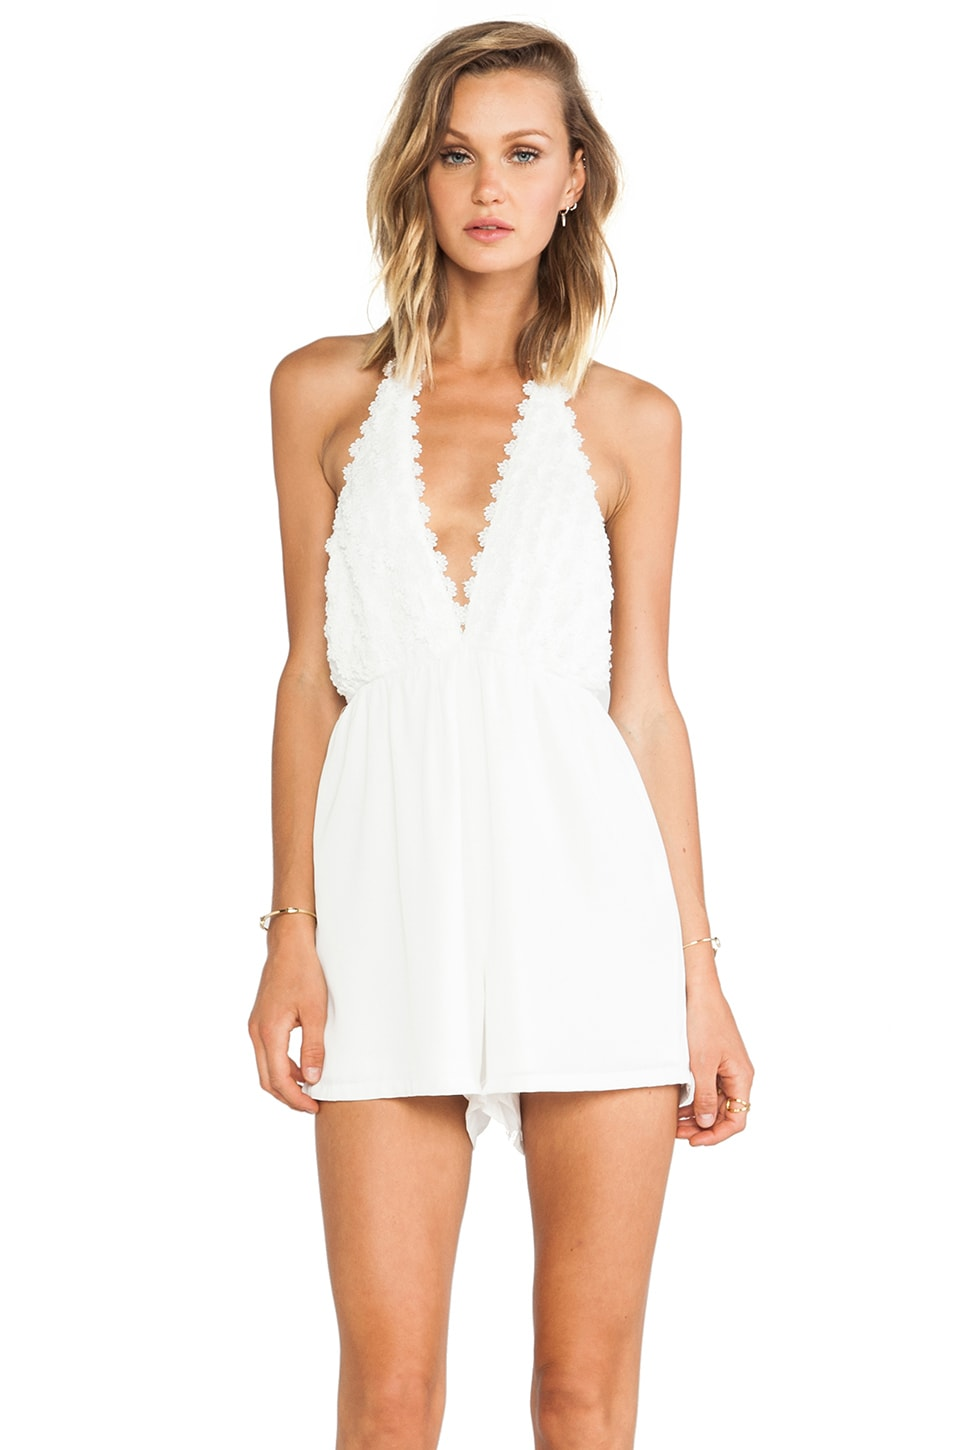 Toby Heart Ginger Daisy Halter Playsuit in White